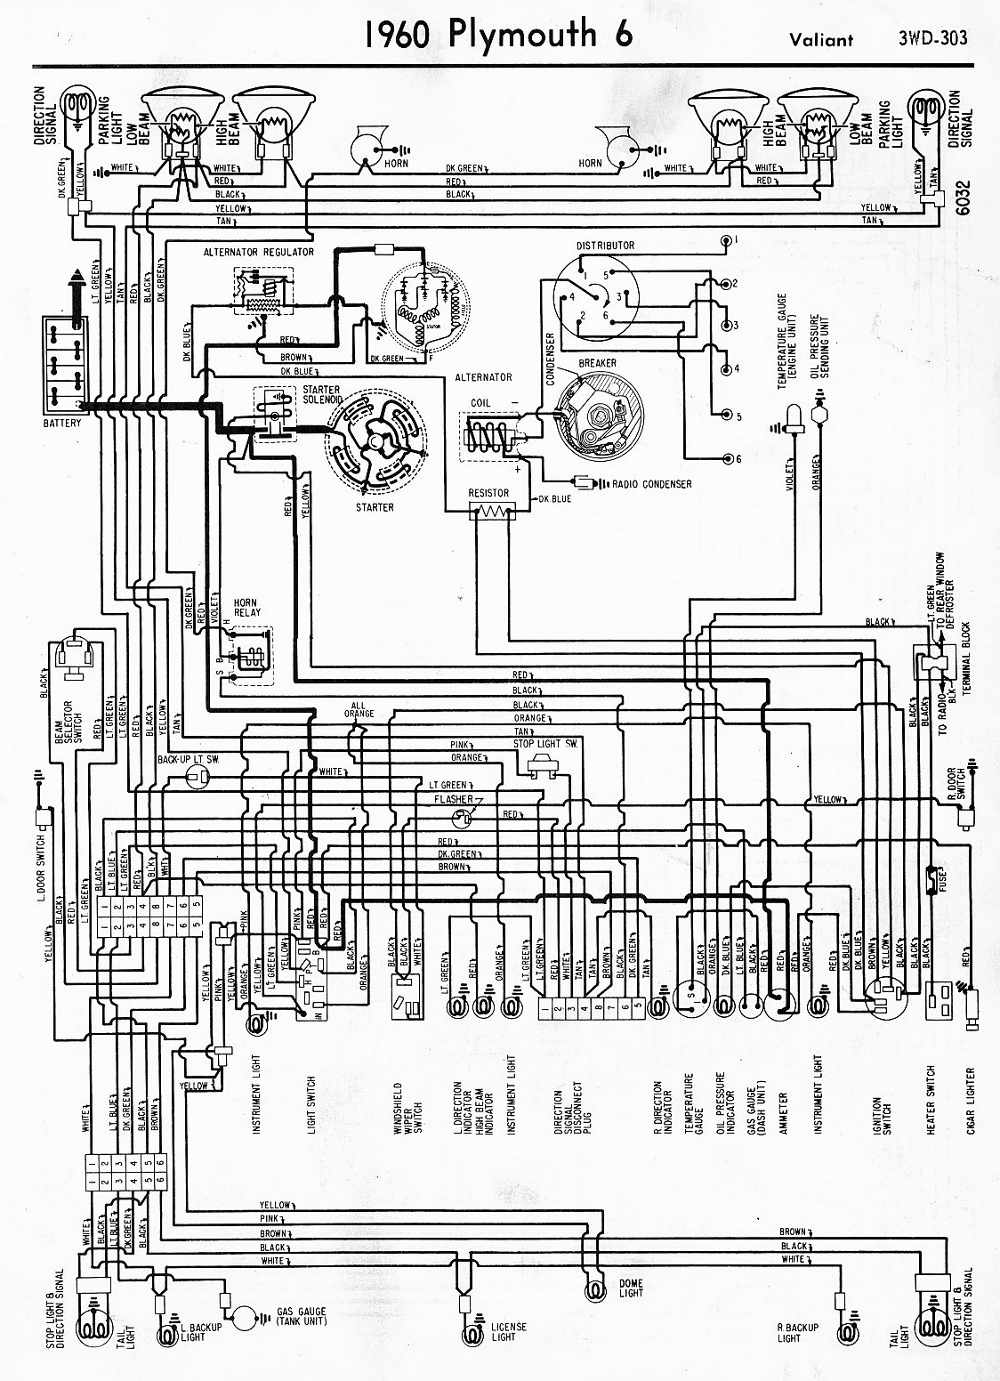 74 Duster Fuse Box Not Lossing Wiring Diagram Plymouth 1975 Simple Schema Rh 13 Lodge Finder De 71 70